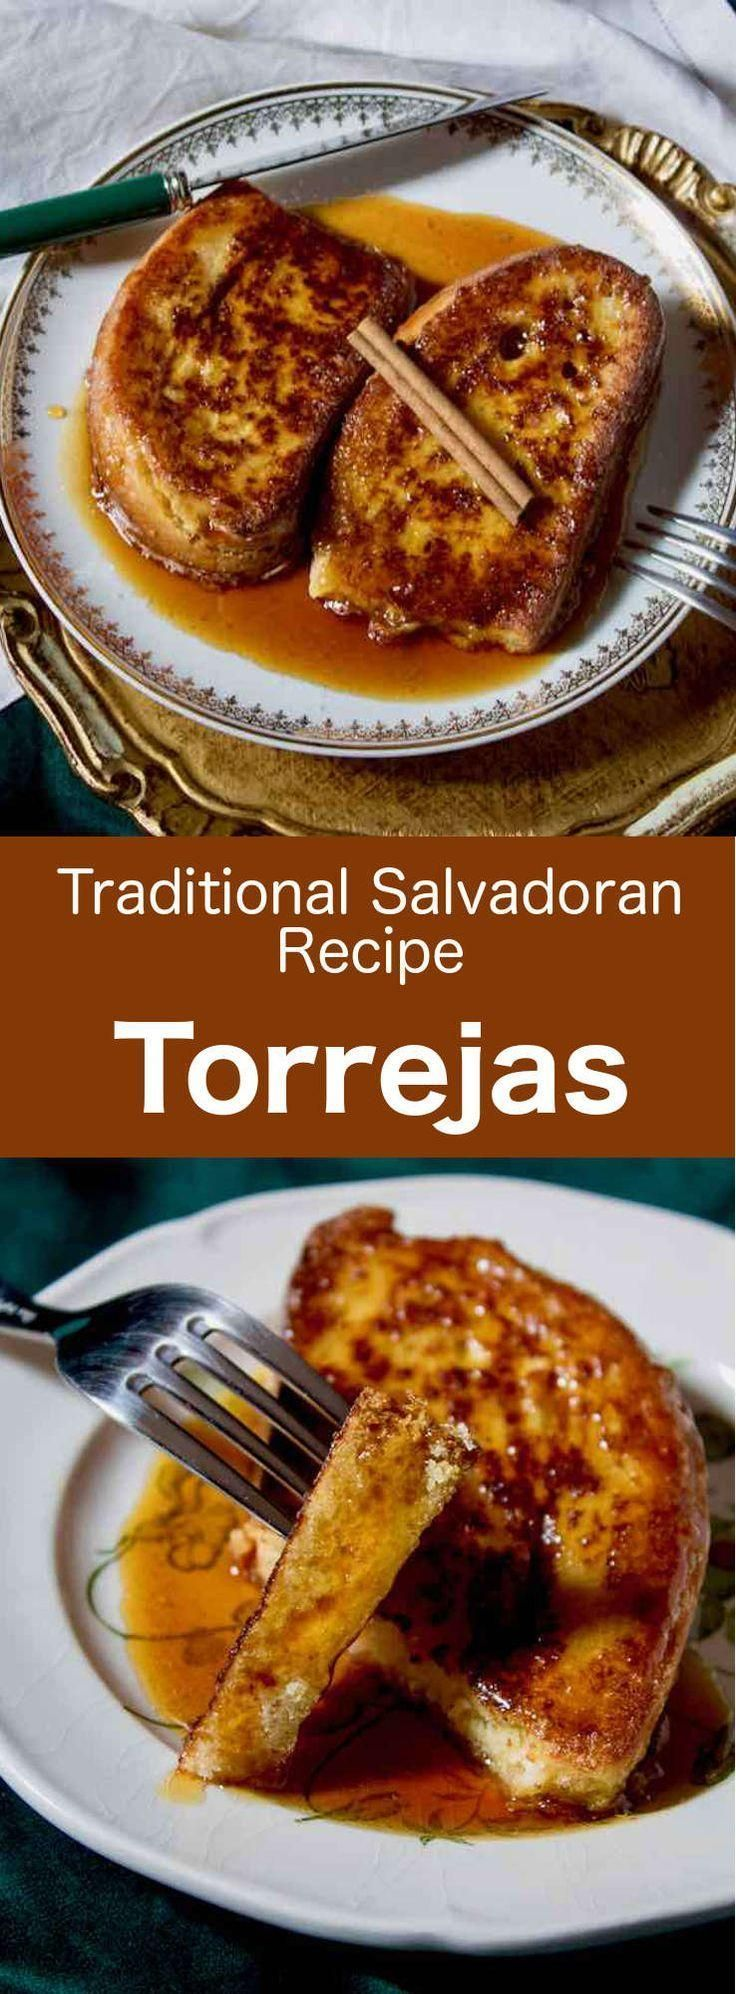 the delicious Latin American version of the French toast They are   CENTRAL AMERICAN KITCHEN Torrejas are the delicious Latin American version of the French toast They ar...